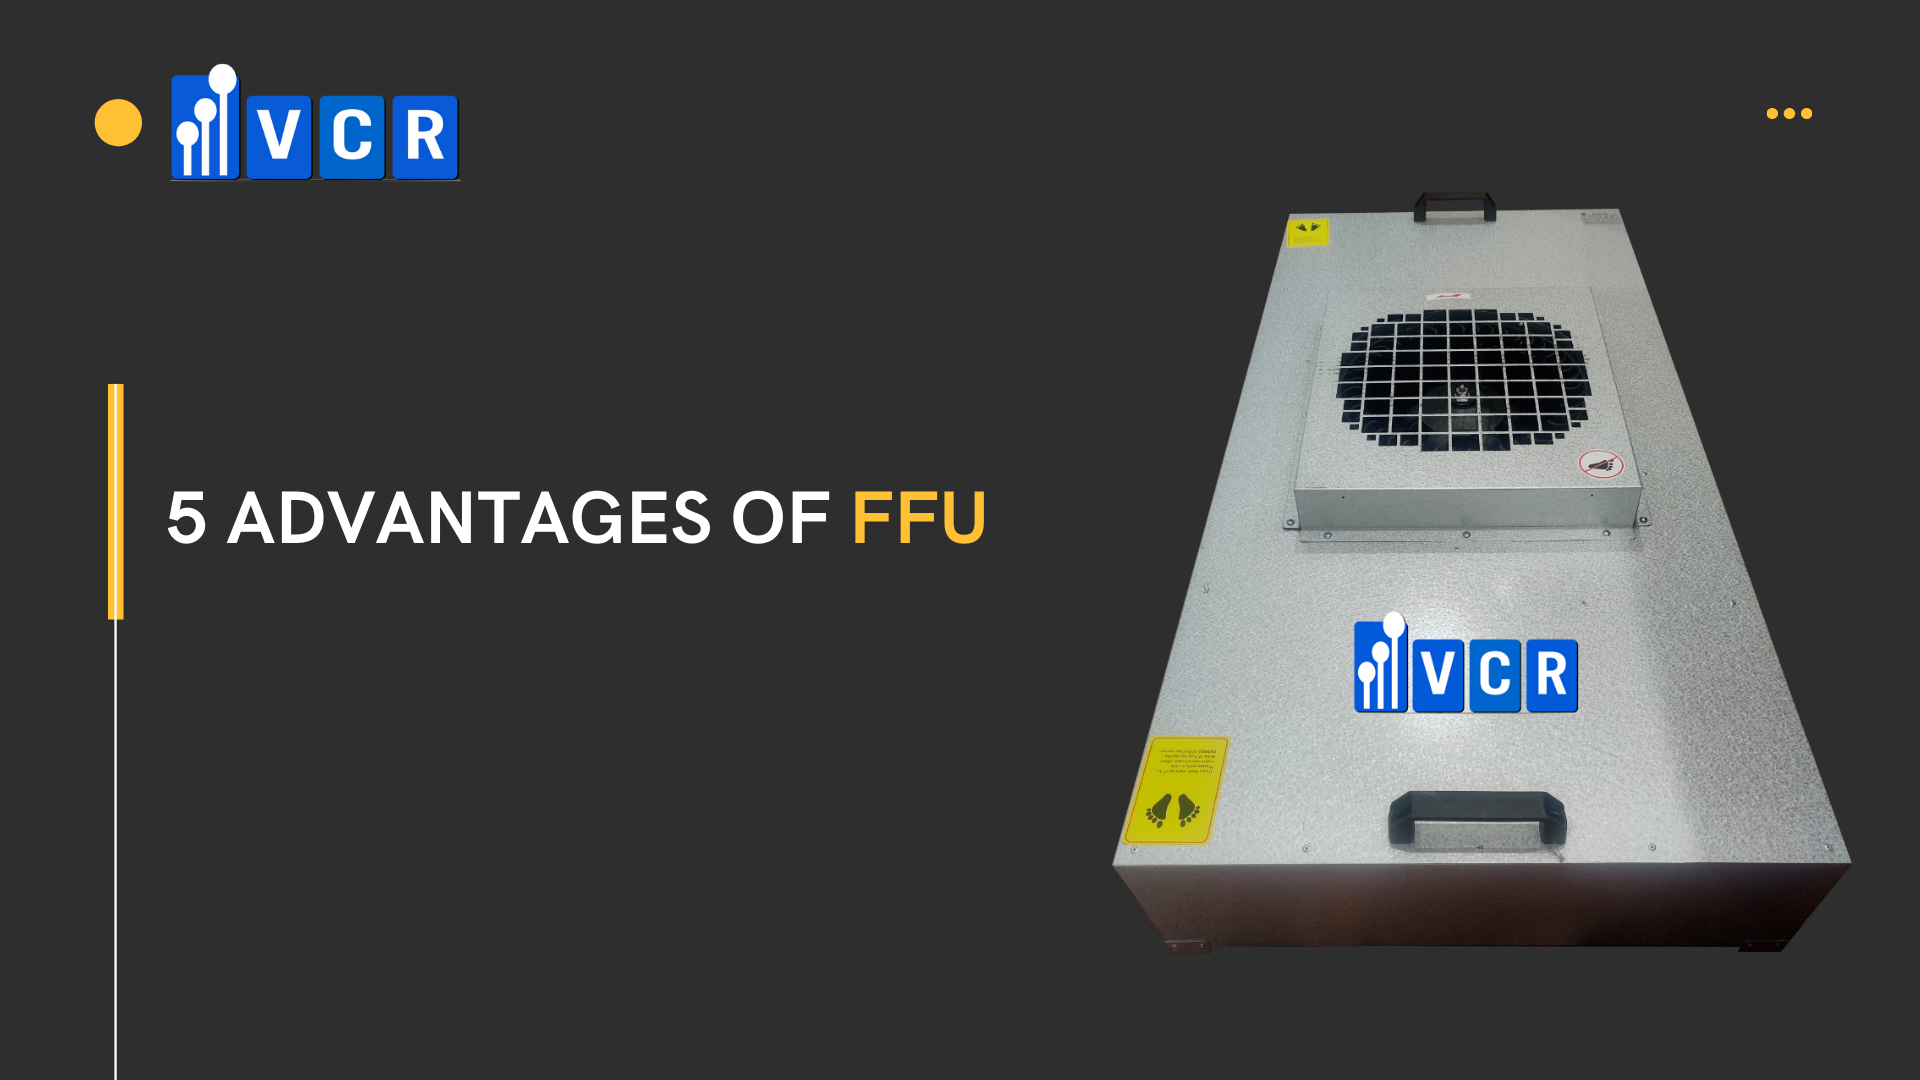 Advantages of FFU